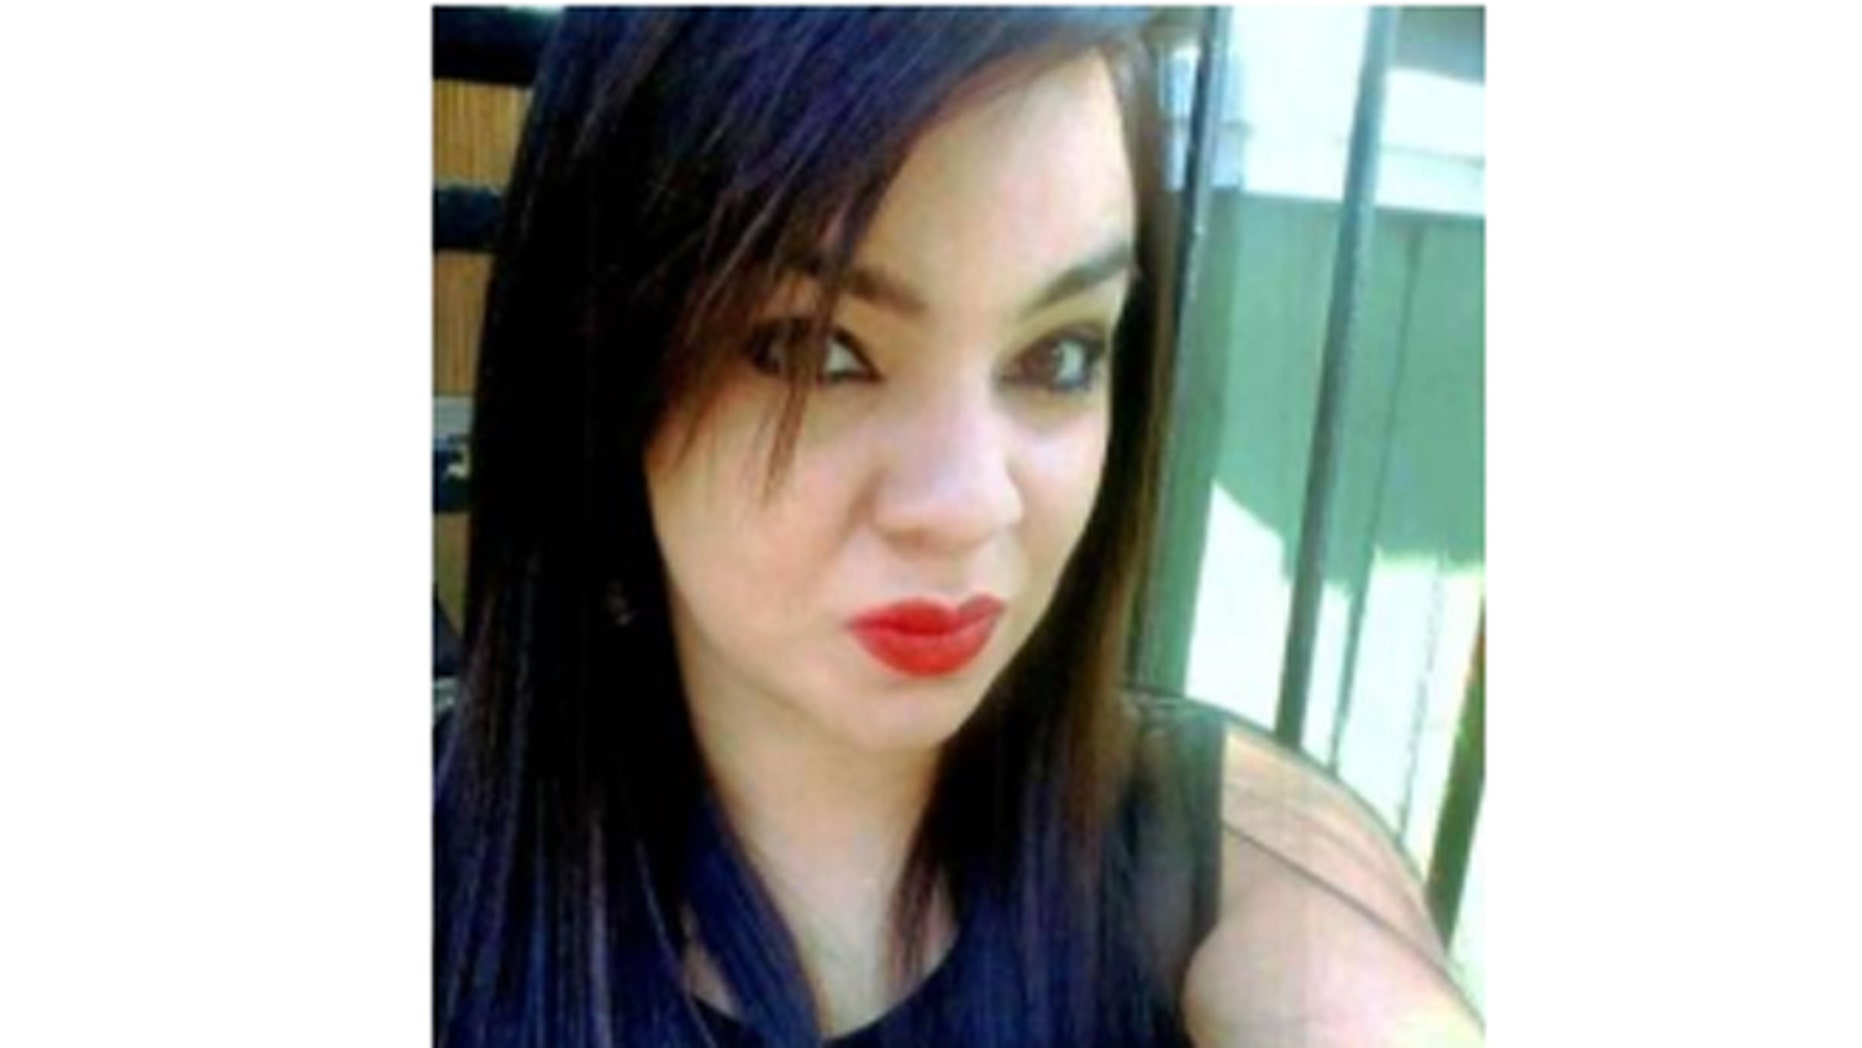 Houston cops said Karen Ramirez, 26, disappeared after going to a club with her boyfriend March 24.